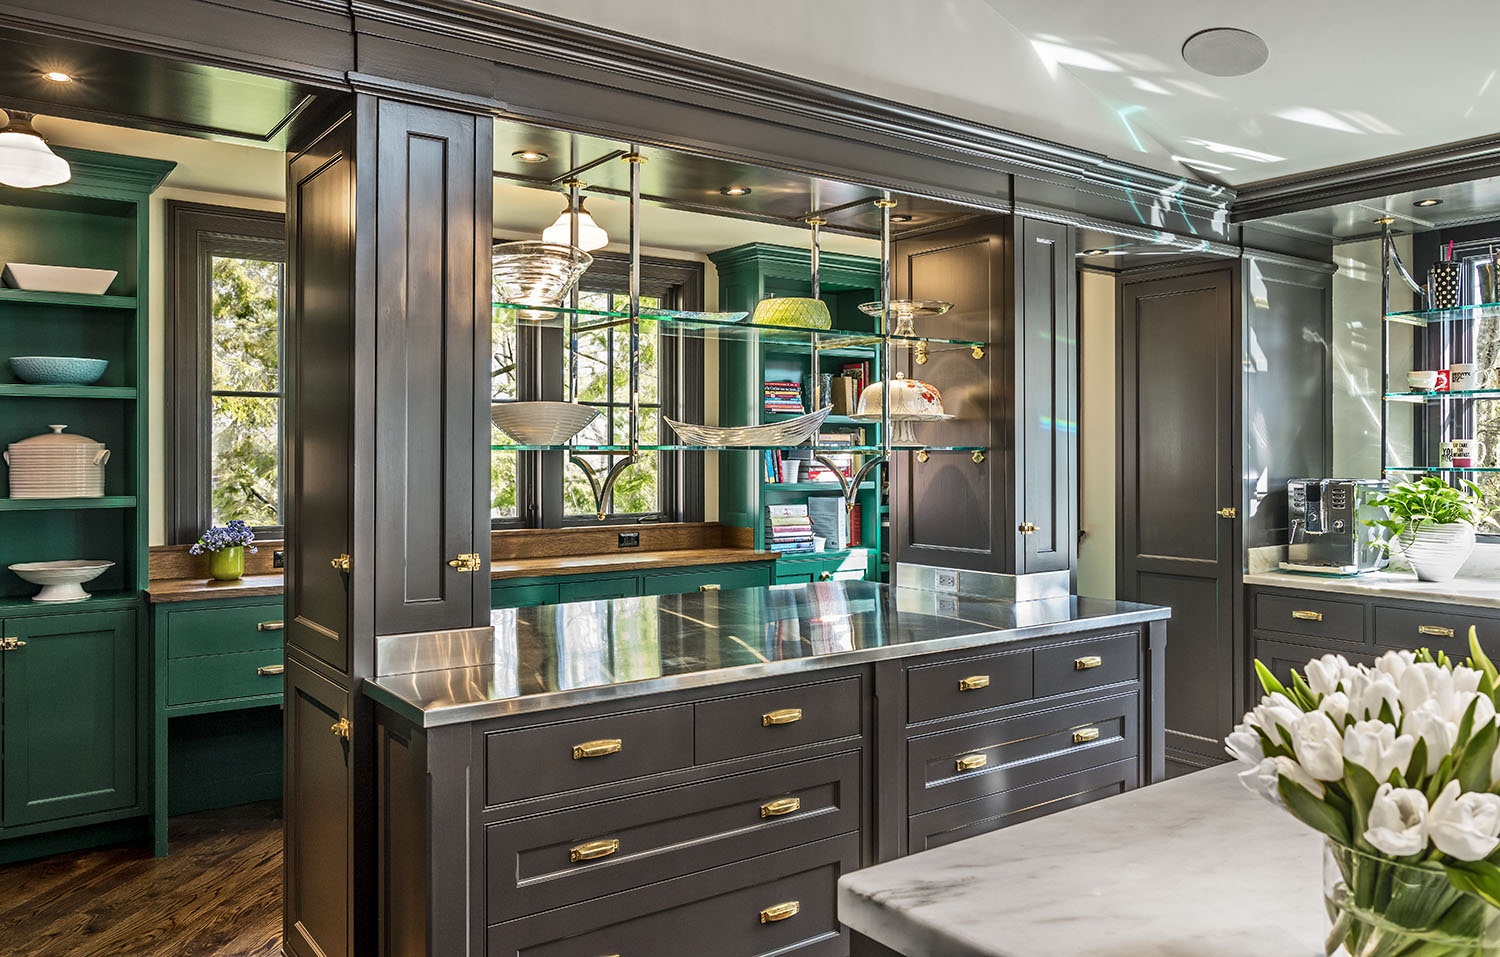 Custom cabinetry adds not only beauty and practicality; it can also create one-of-a-kind living spaces that—quite literally—are tailor made for the homeowner. For the spectacular kitchen shown here, a study in wood and glass work with an array of finishes